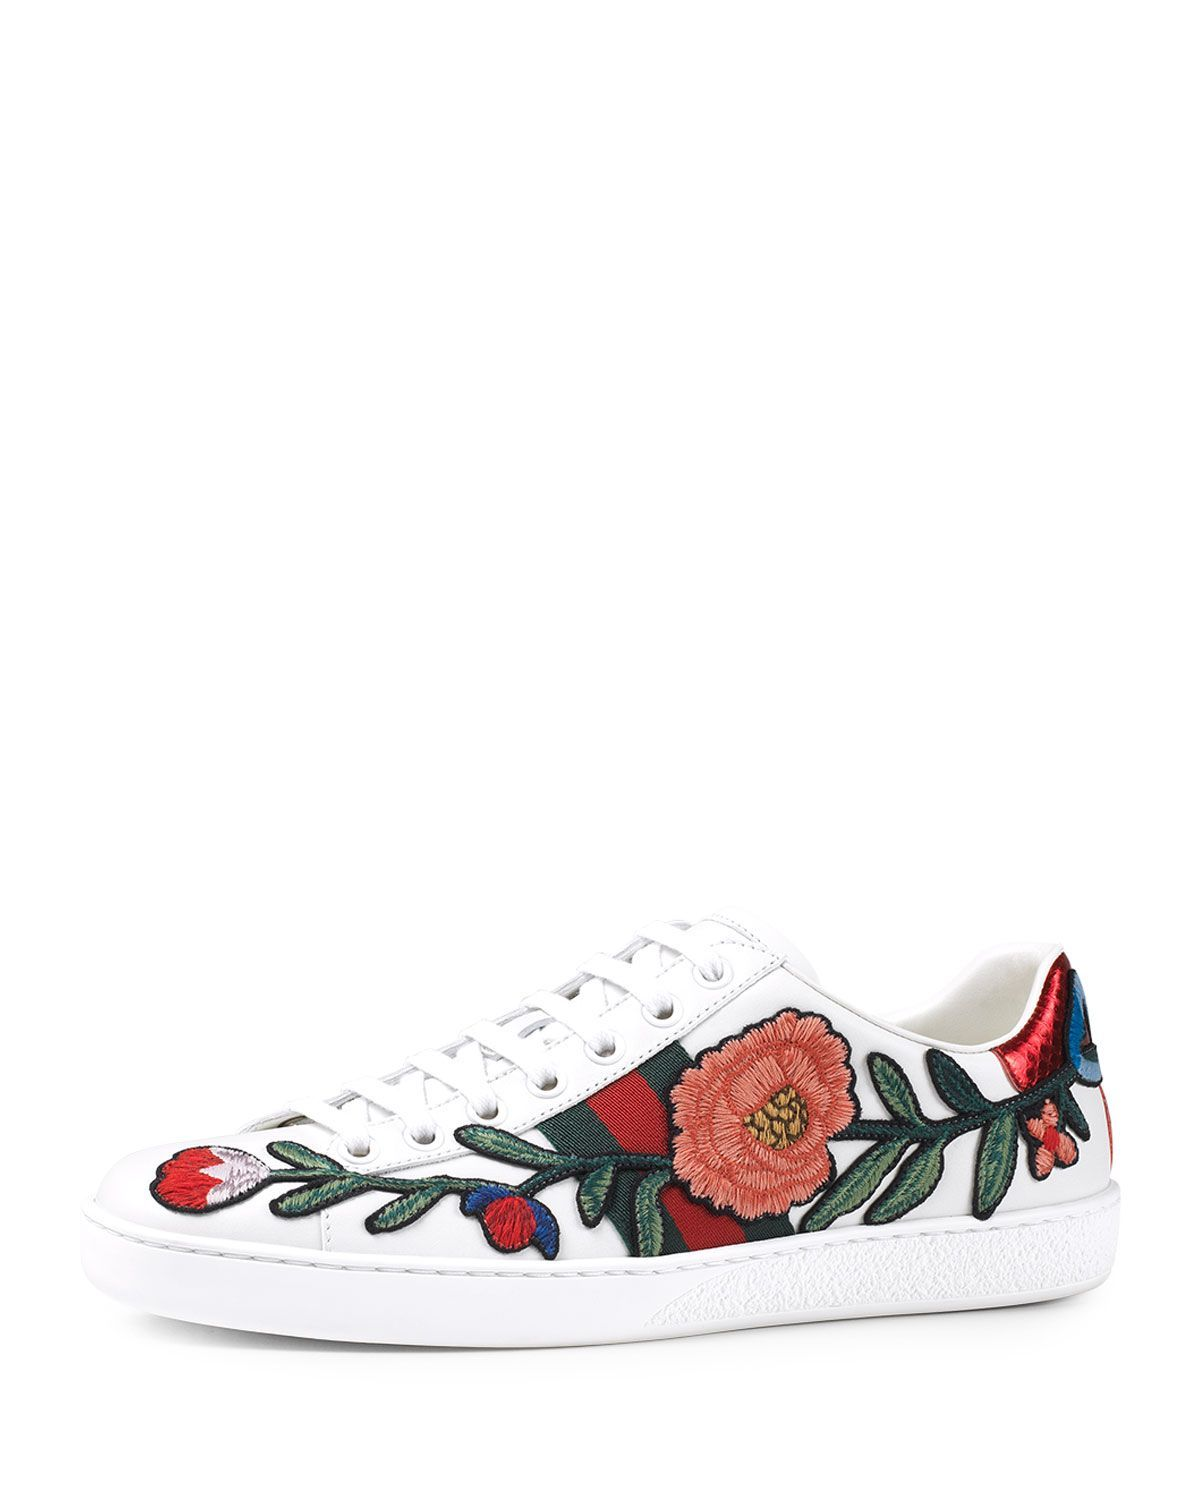 3394e1ac364 Gucci New Ace Floral-Embroidered Low-Top Sneaker